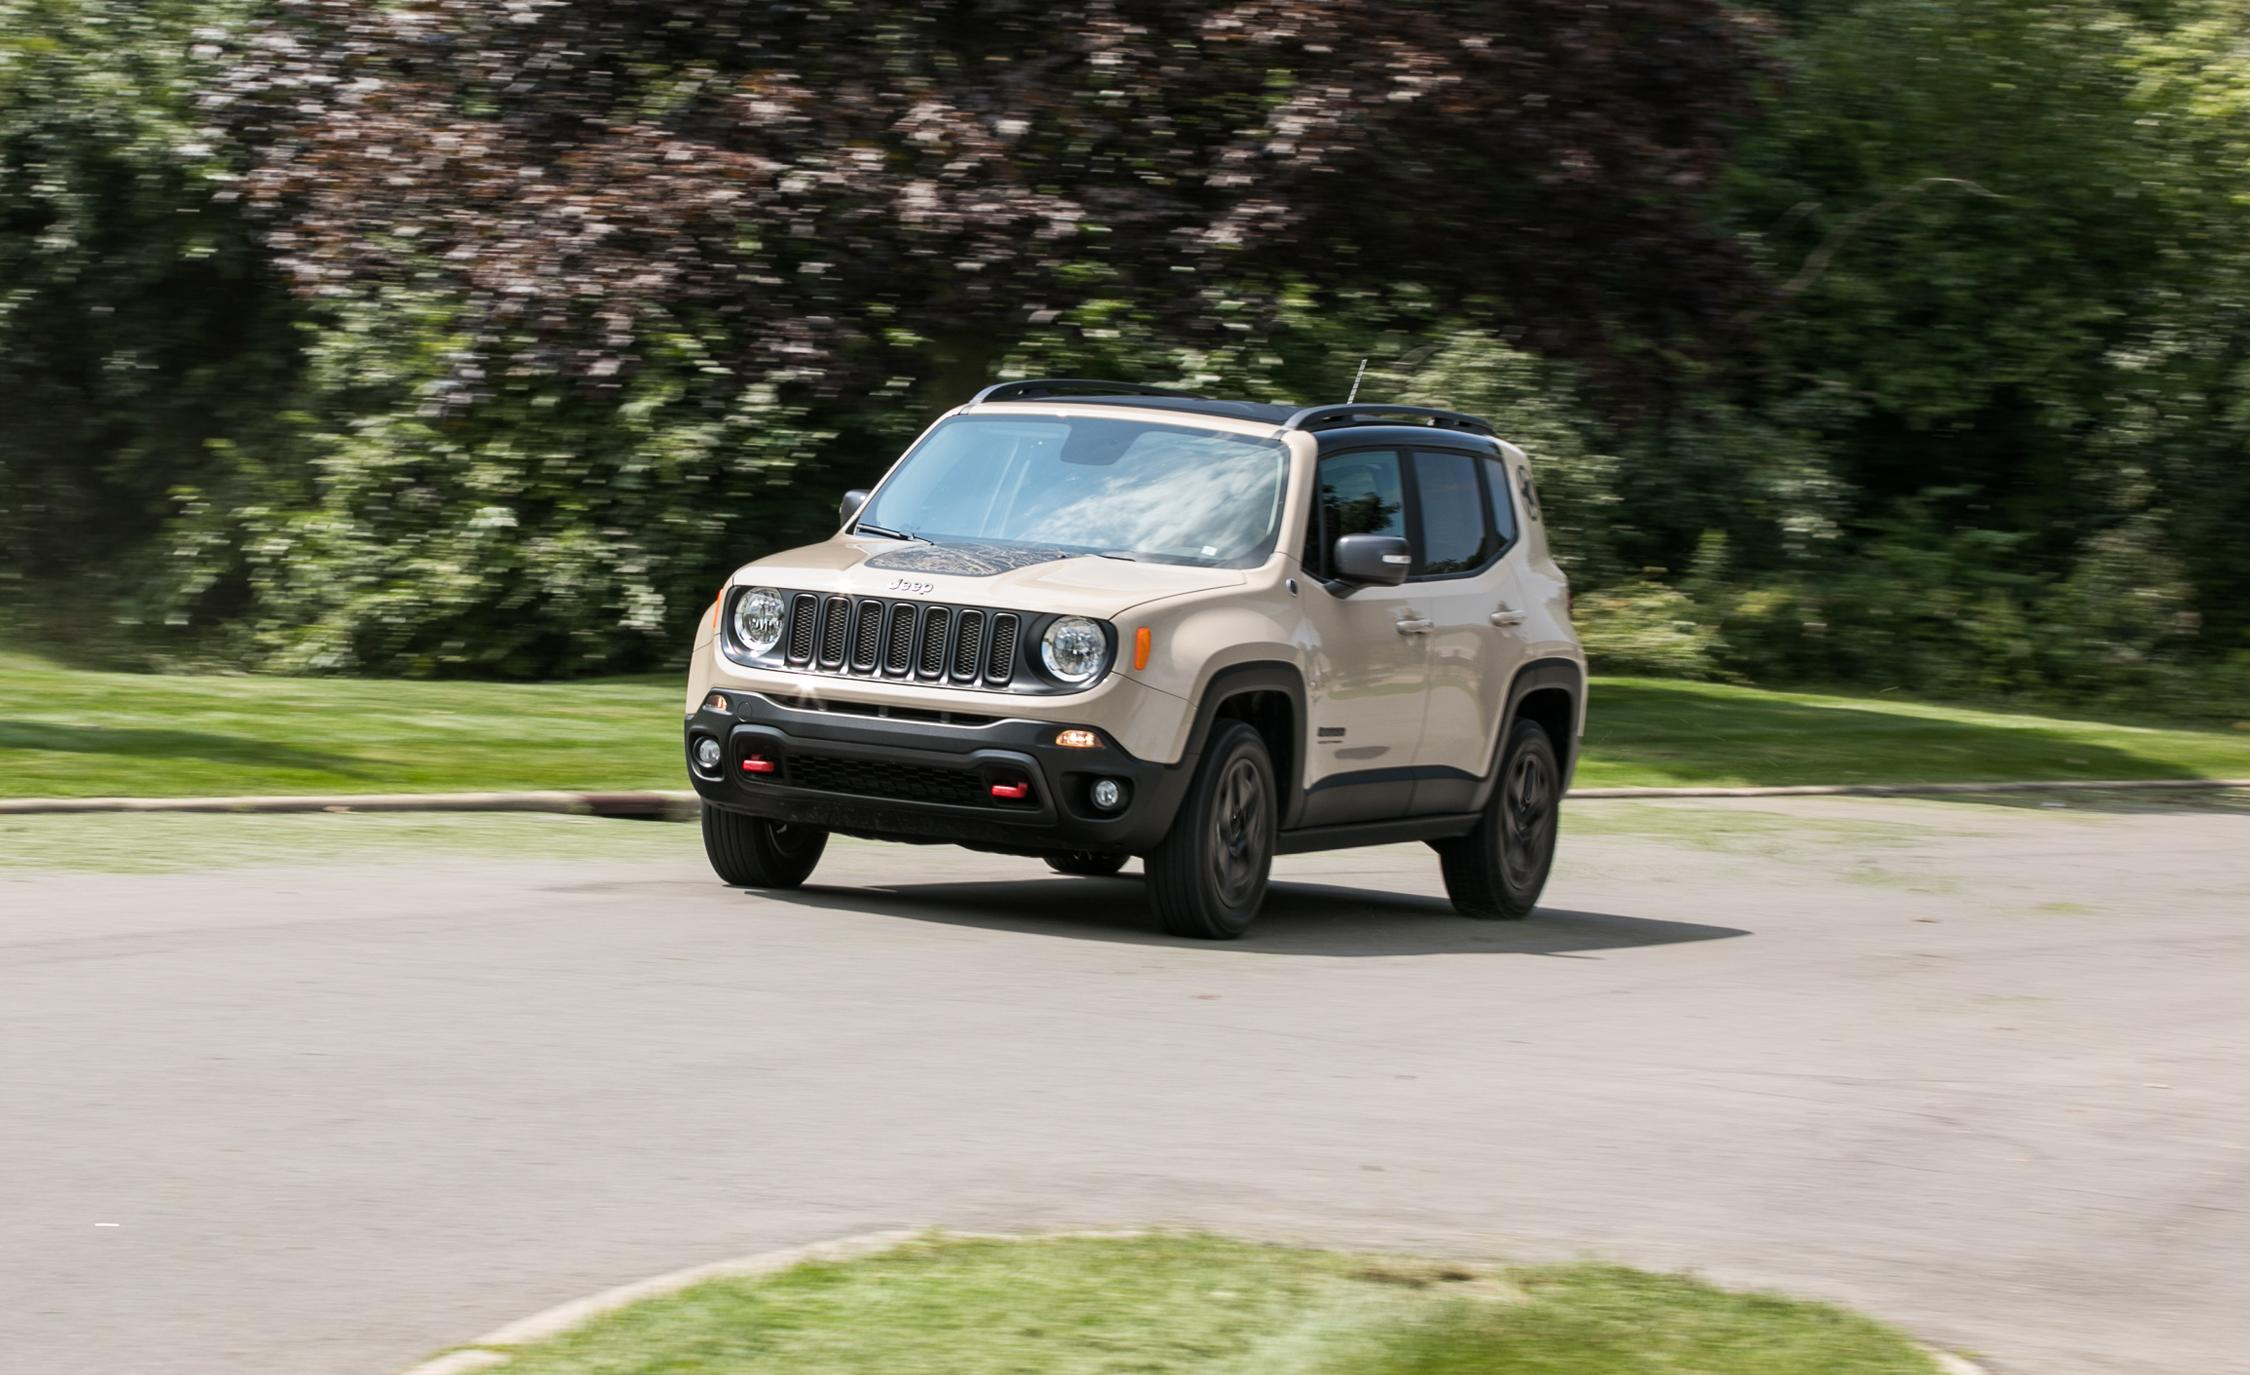 2017 jeep renegade deserthawk 2 4l 4x4. Black Bedroom Furniture Sets. Home Design Ideas